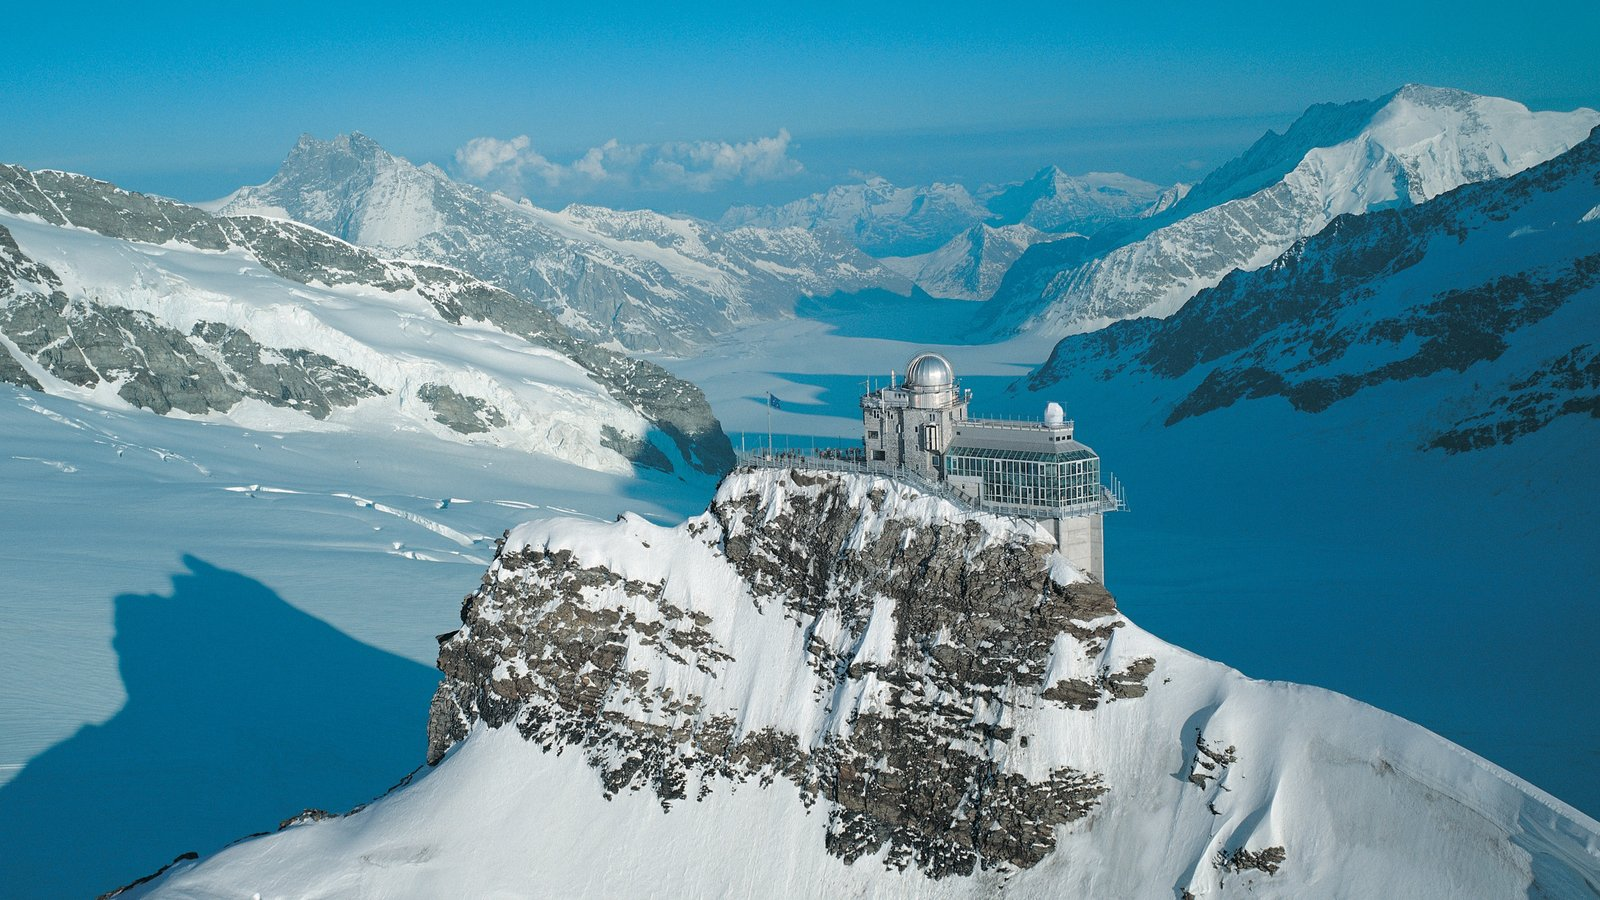 Jungfraujoch which includes an observatory, mountains and snow